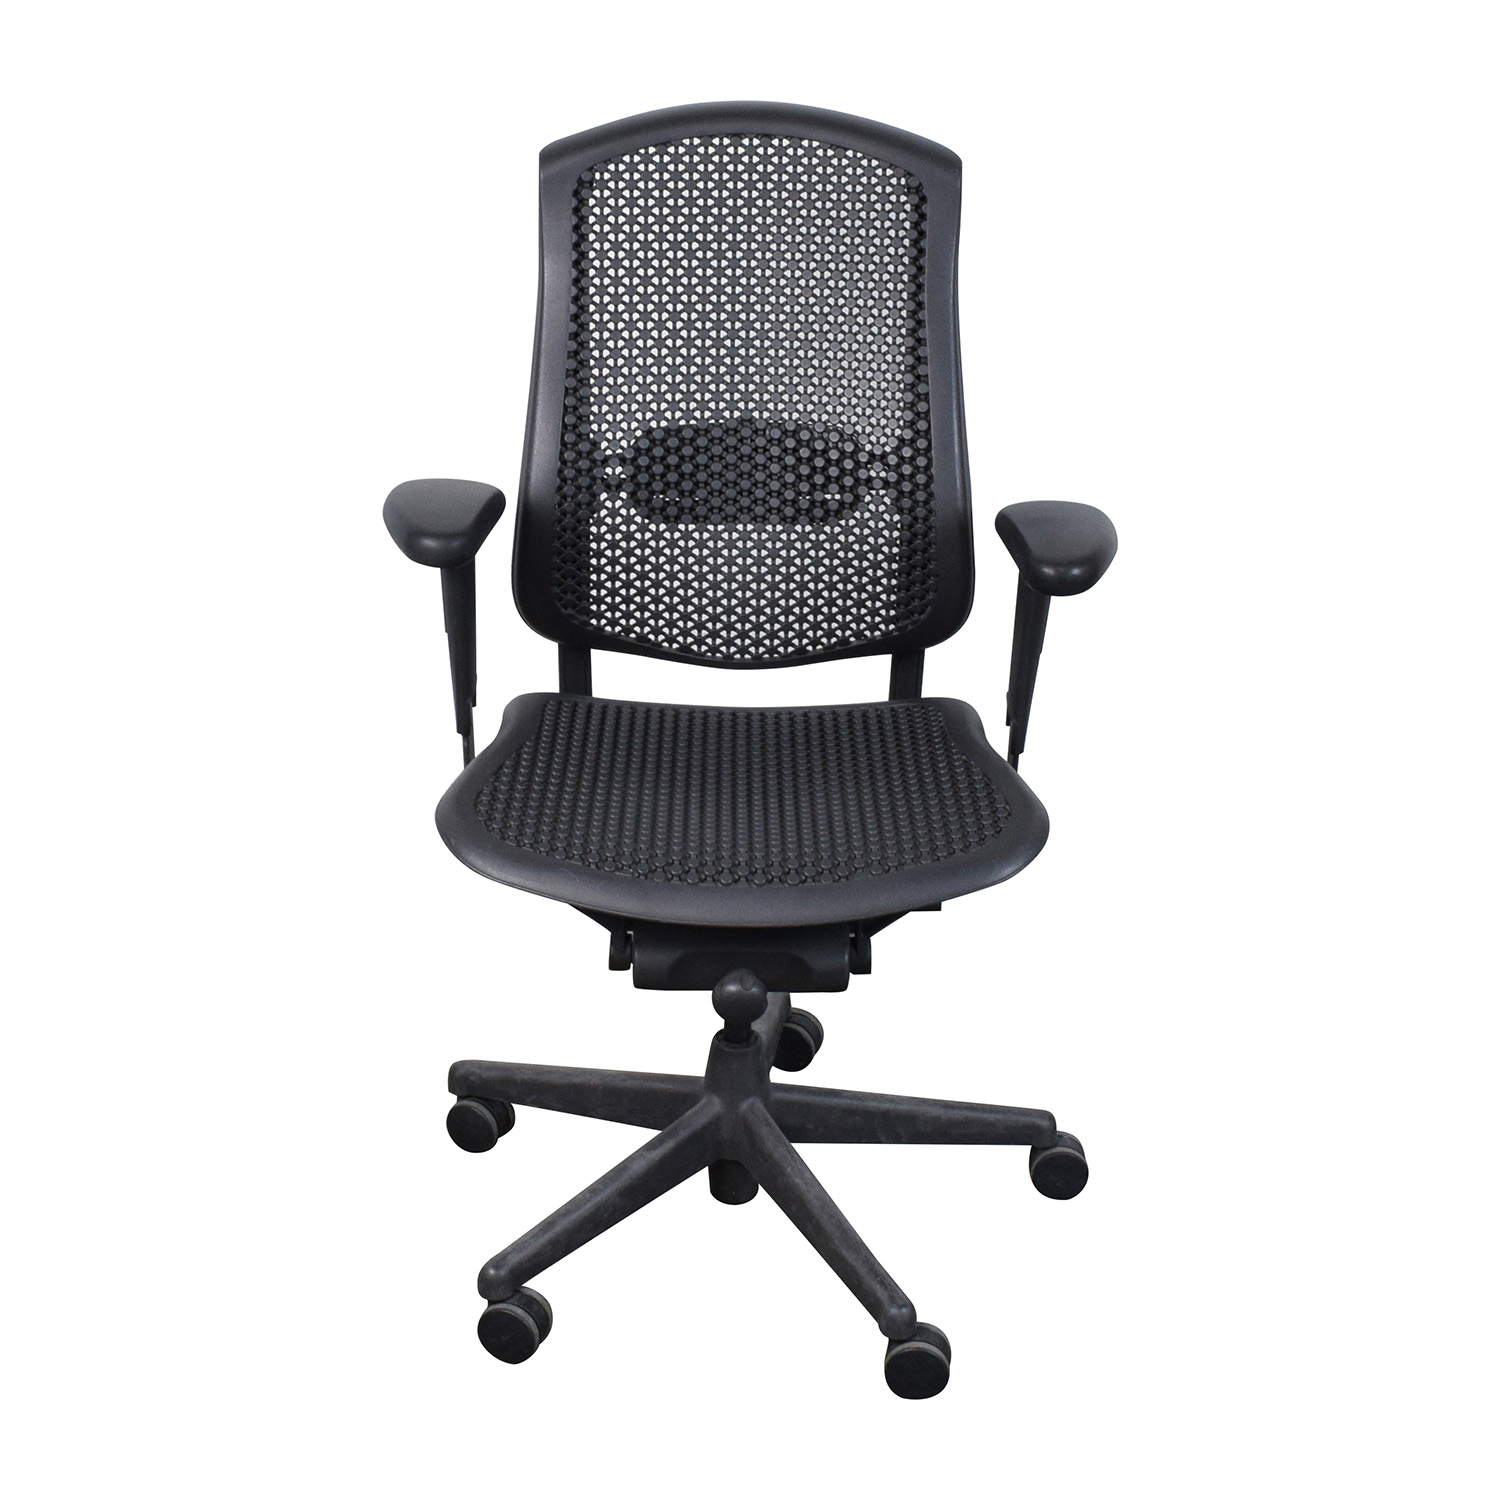 Herman Miller Herman Miller Celle Chair price